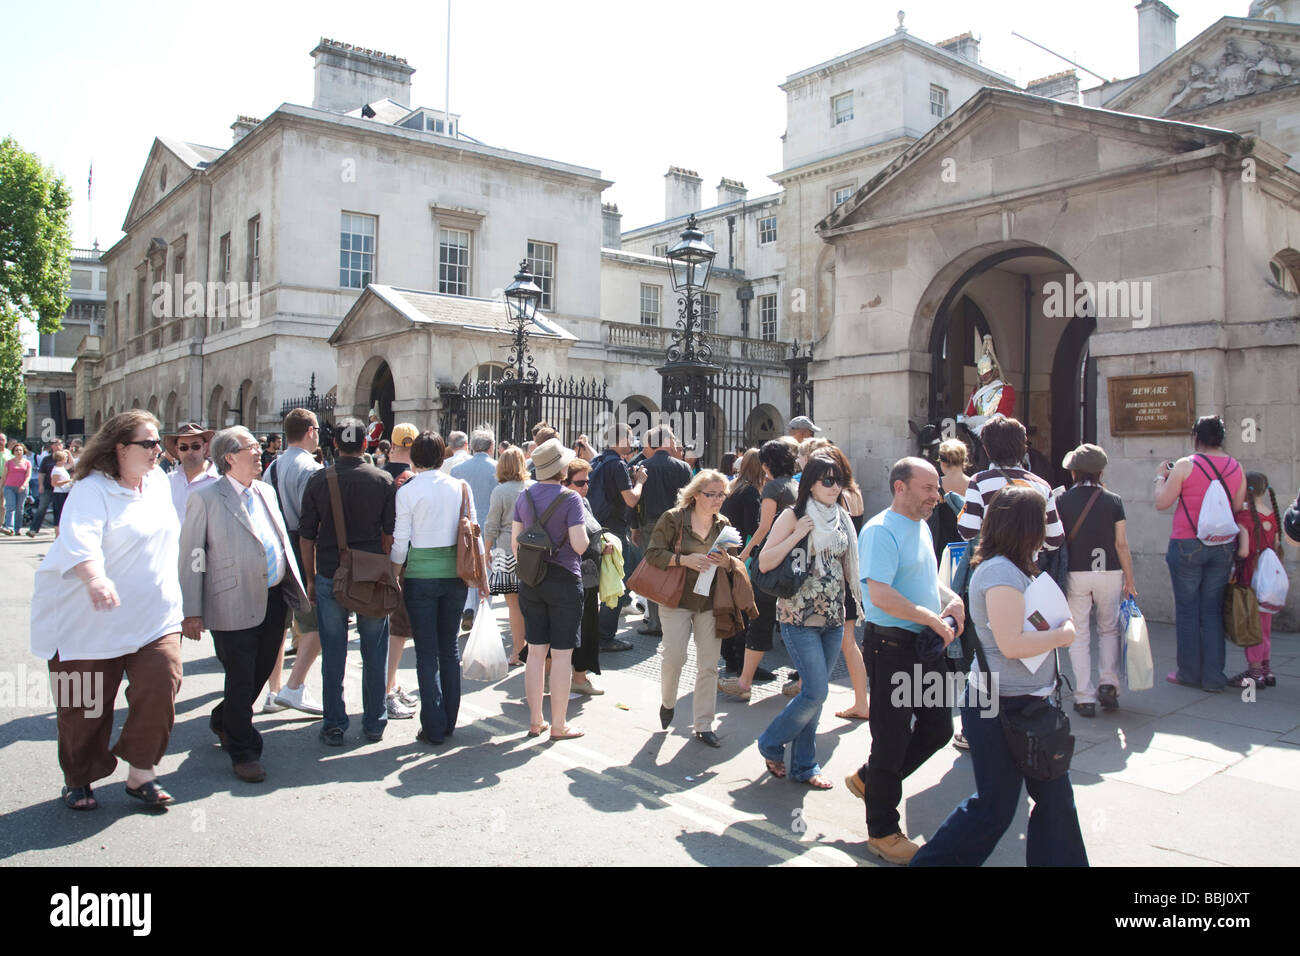 Touristen - Horse Guards Parade - Whitehall - London Stockbild